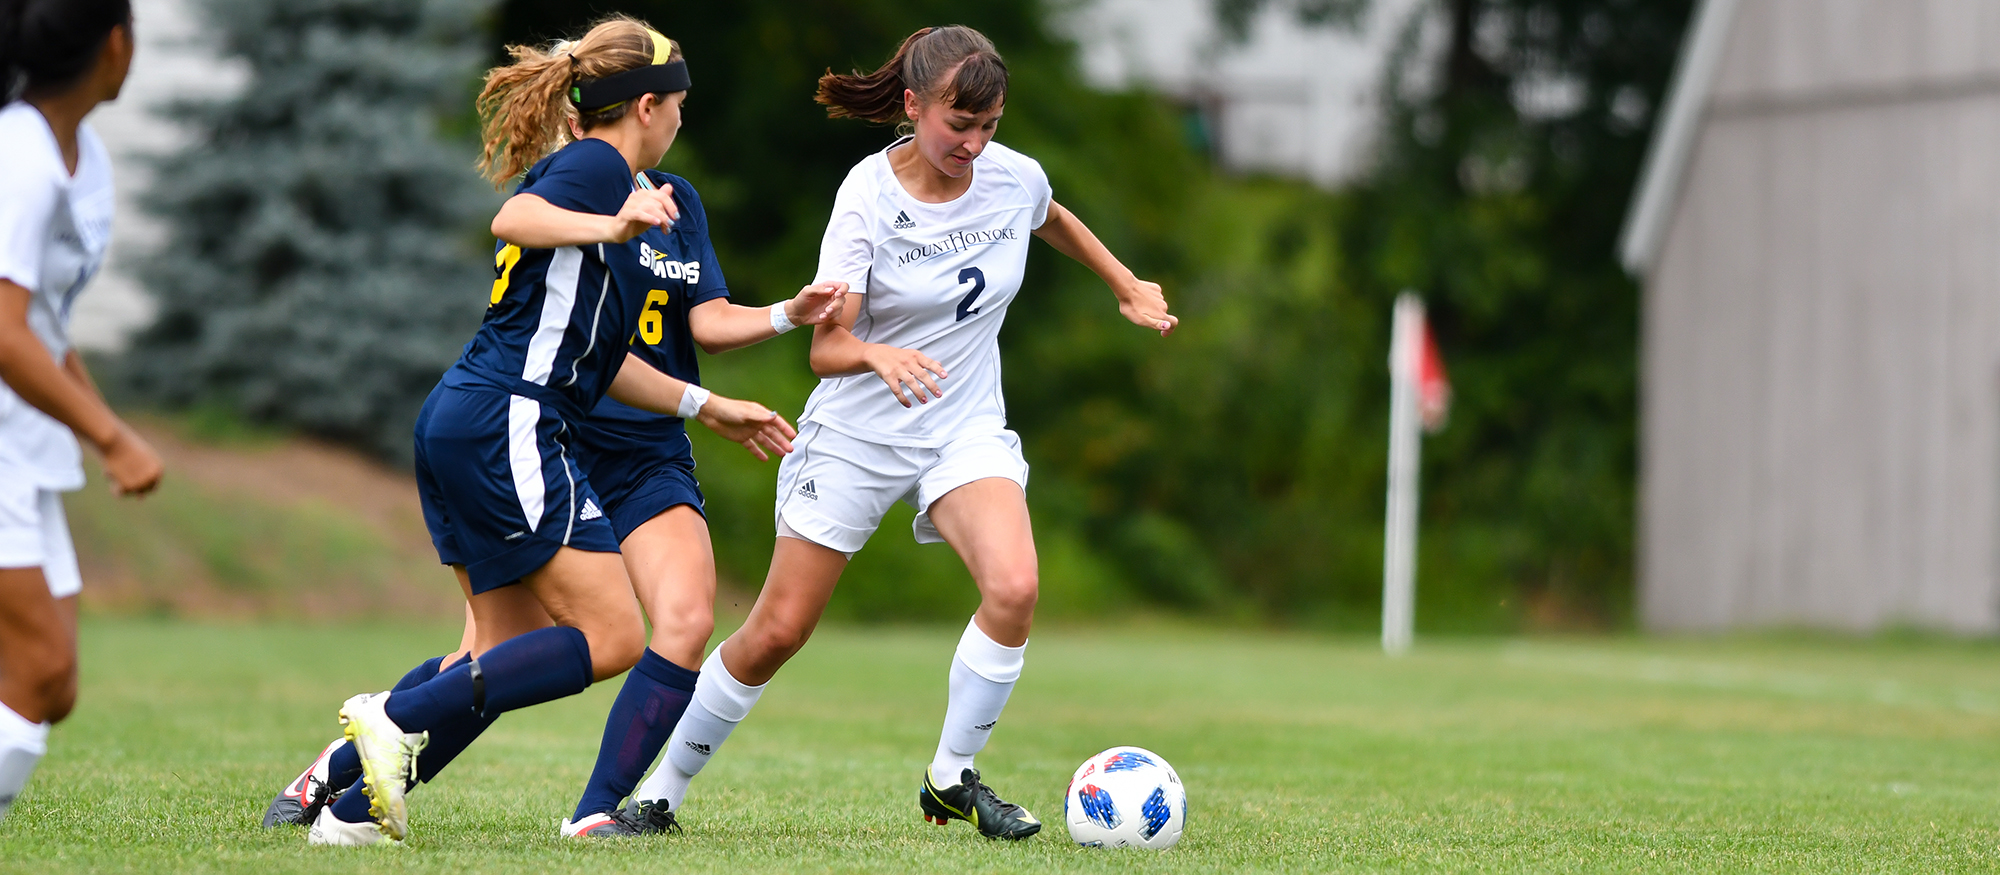 Action photo of Lyons soccer player, Chloe Bernier.